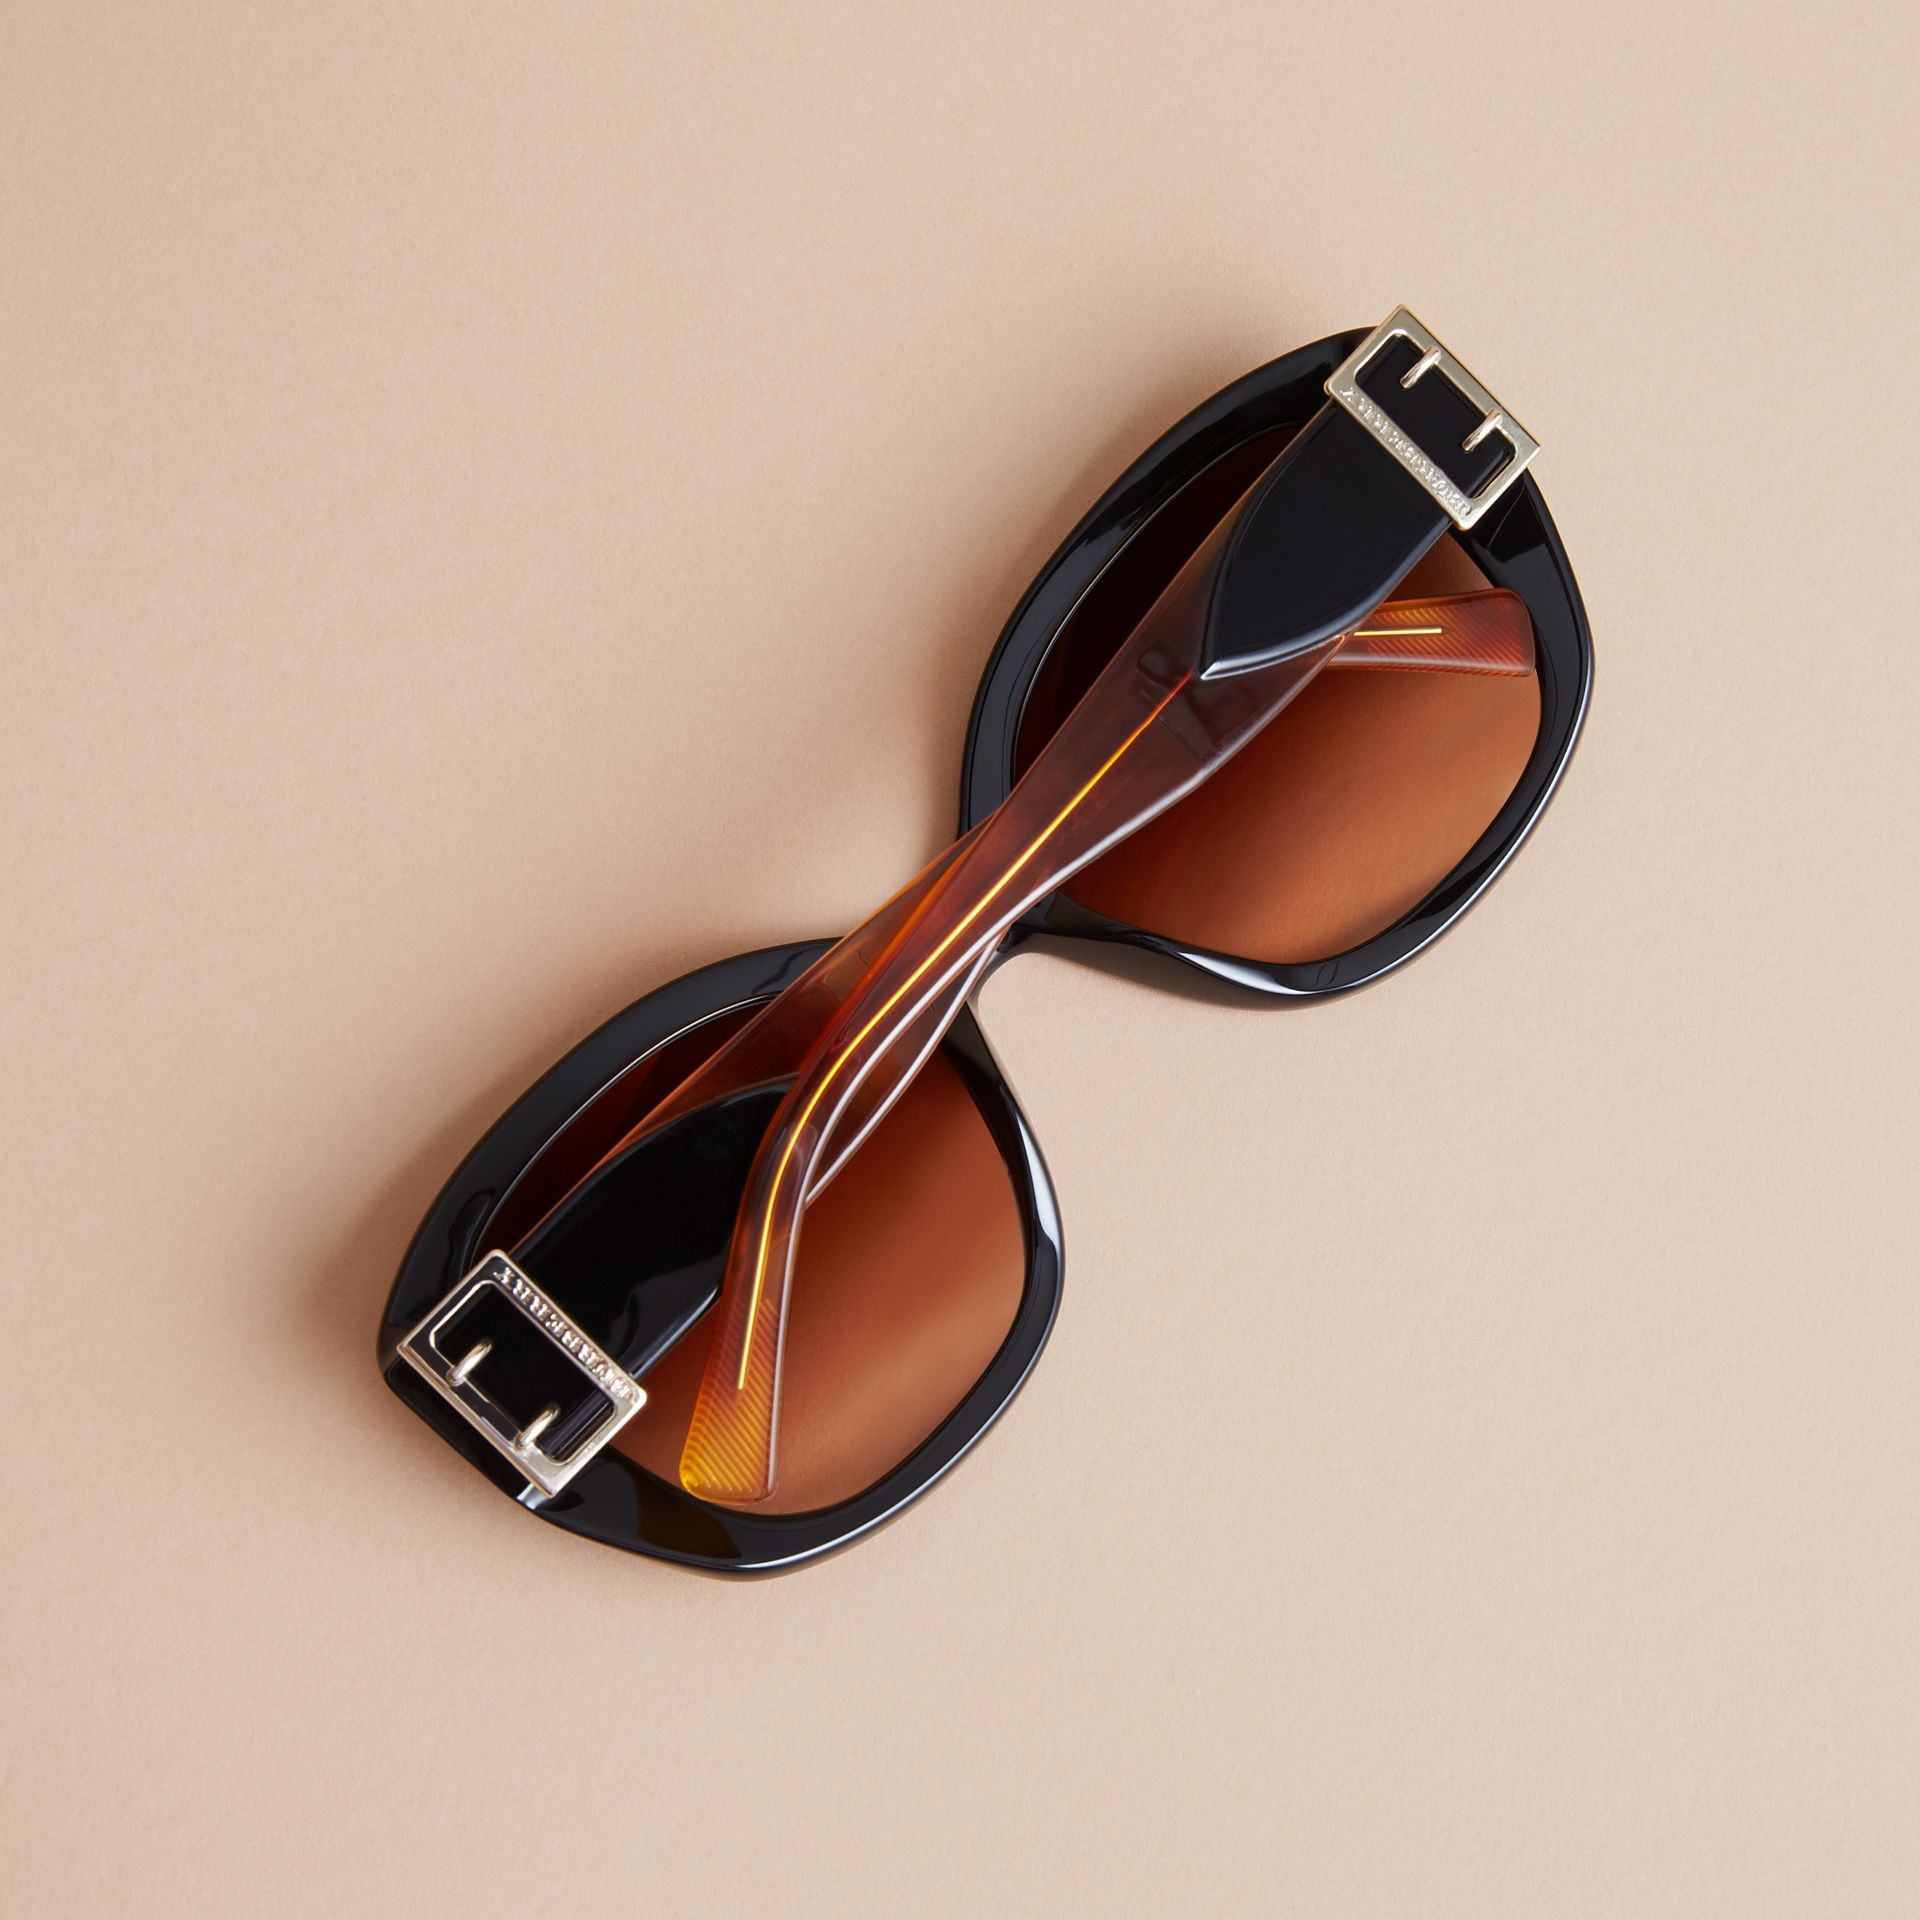 Buckle Detail Oversize Square Frame Sunglasses in Black - Women | Burberry Canada - gallery image 3